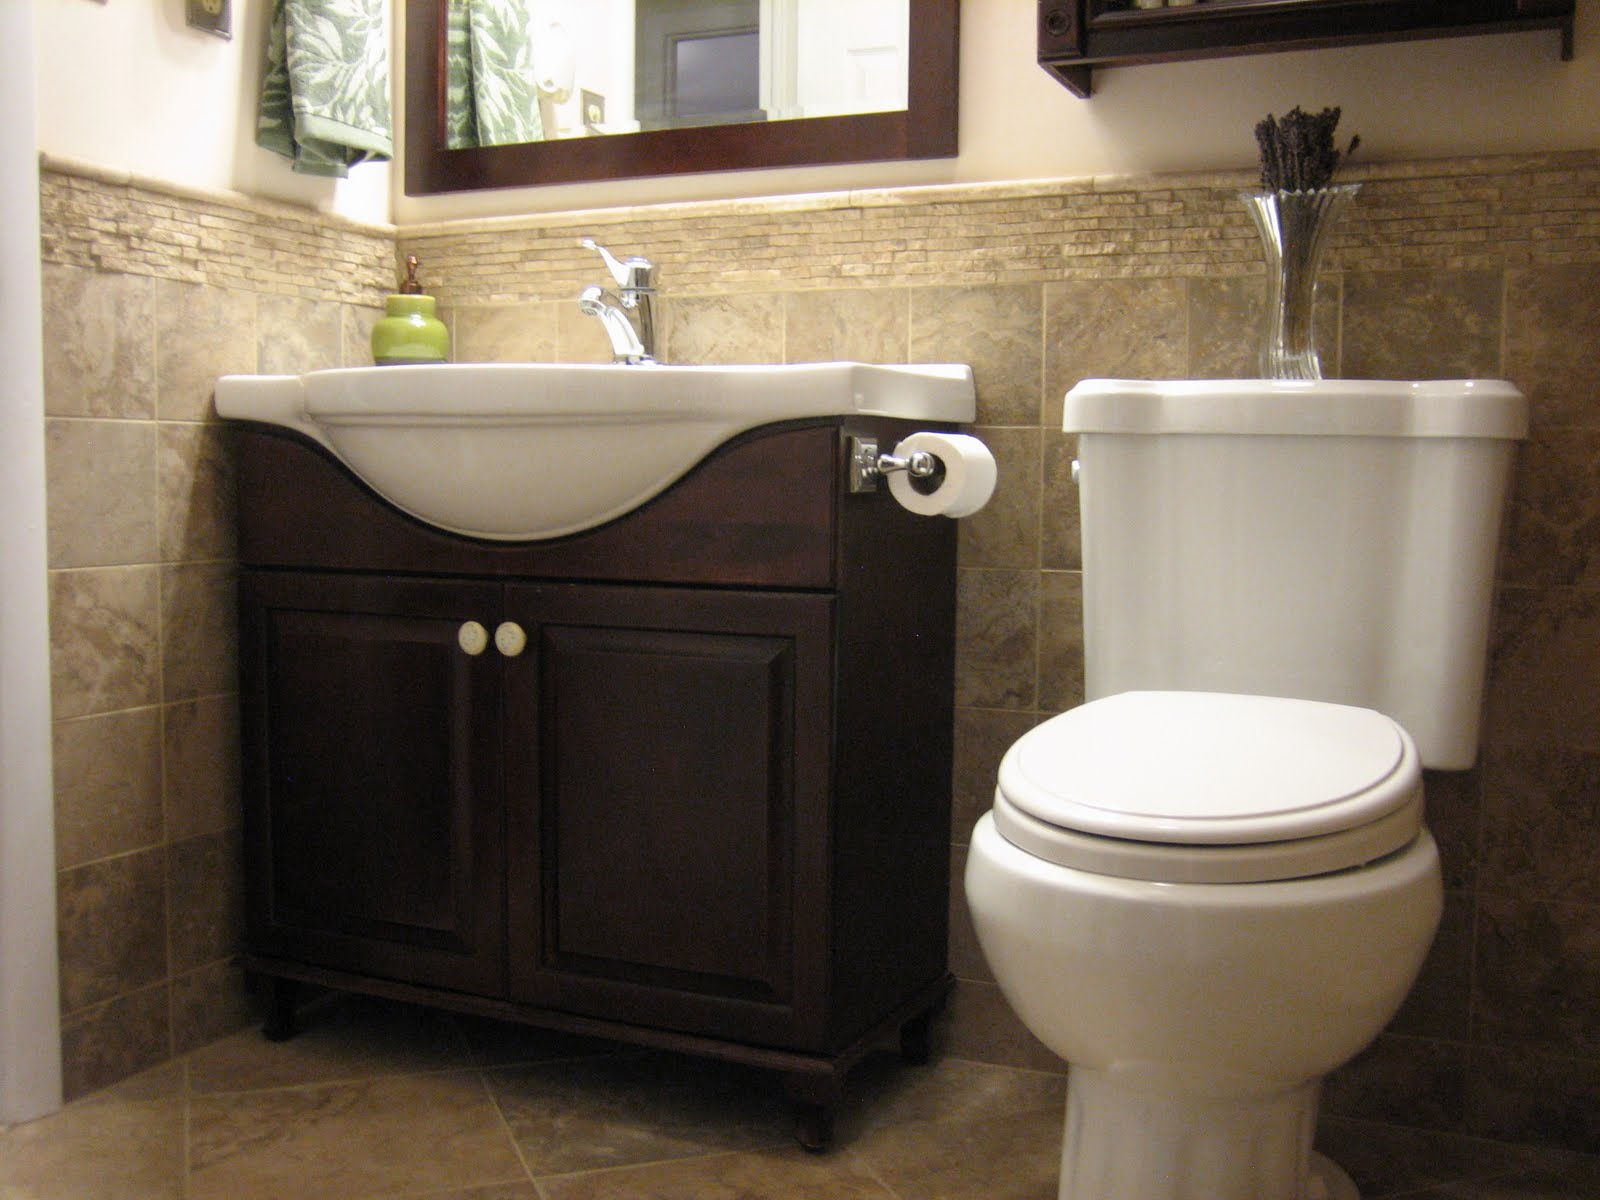 H winter showroom blog luxury master bath remodel athena for Small half bathroom designs